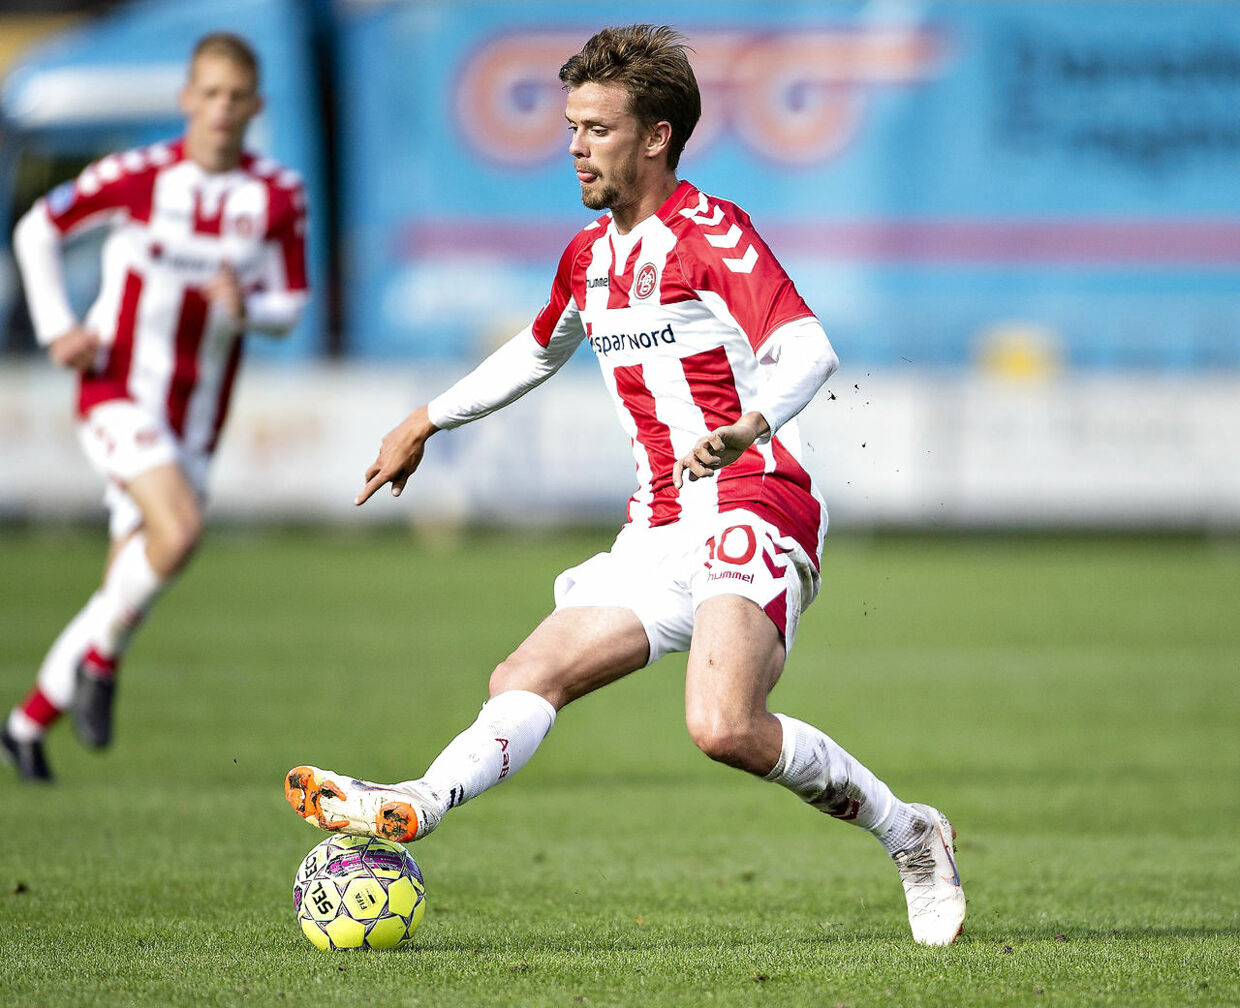 AaB's Lucas Andersen i aktion.